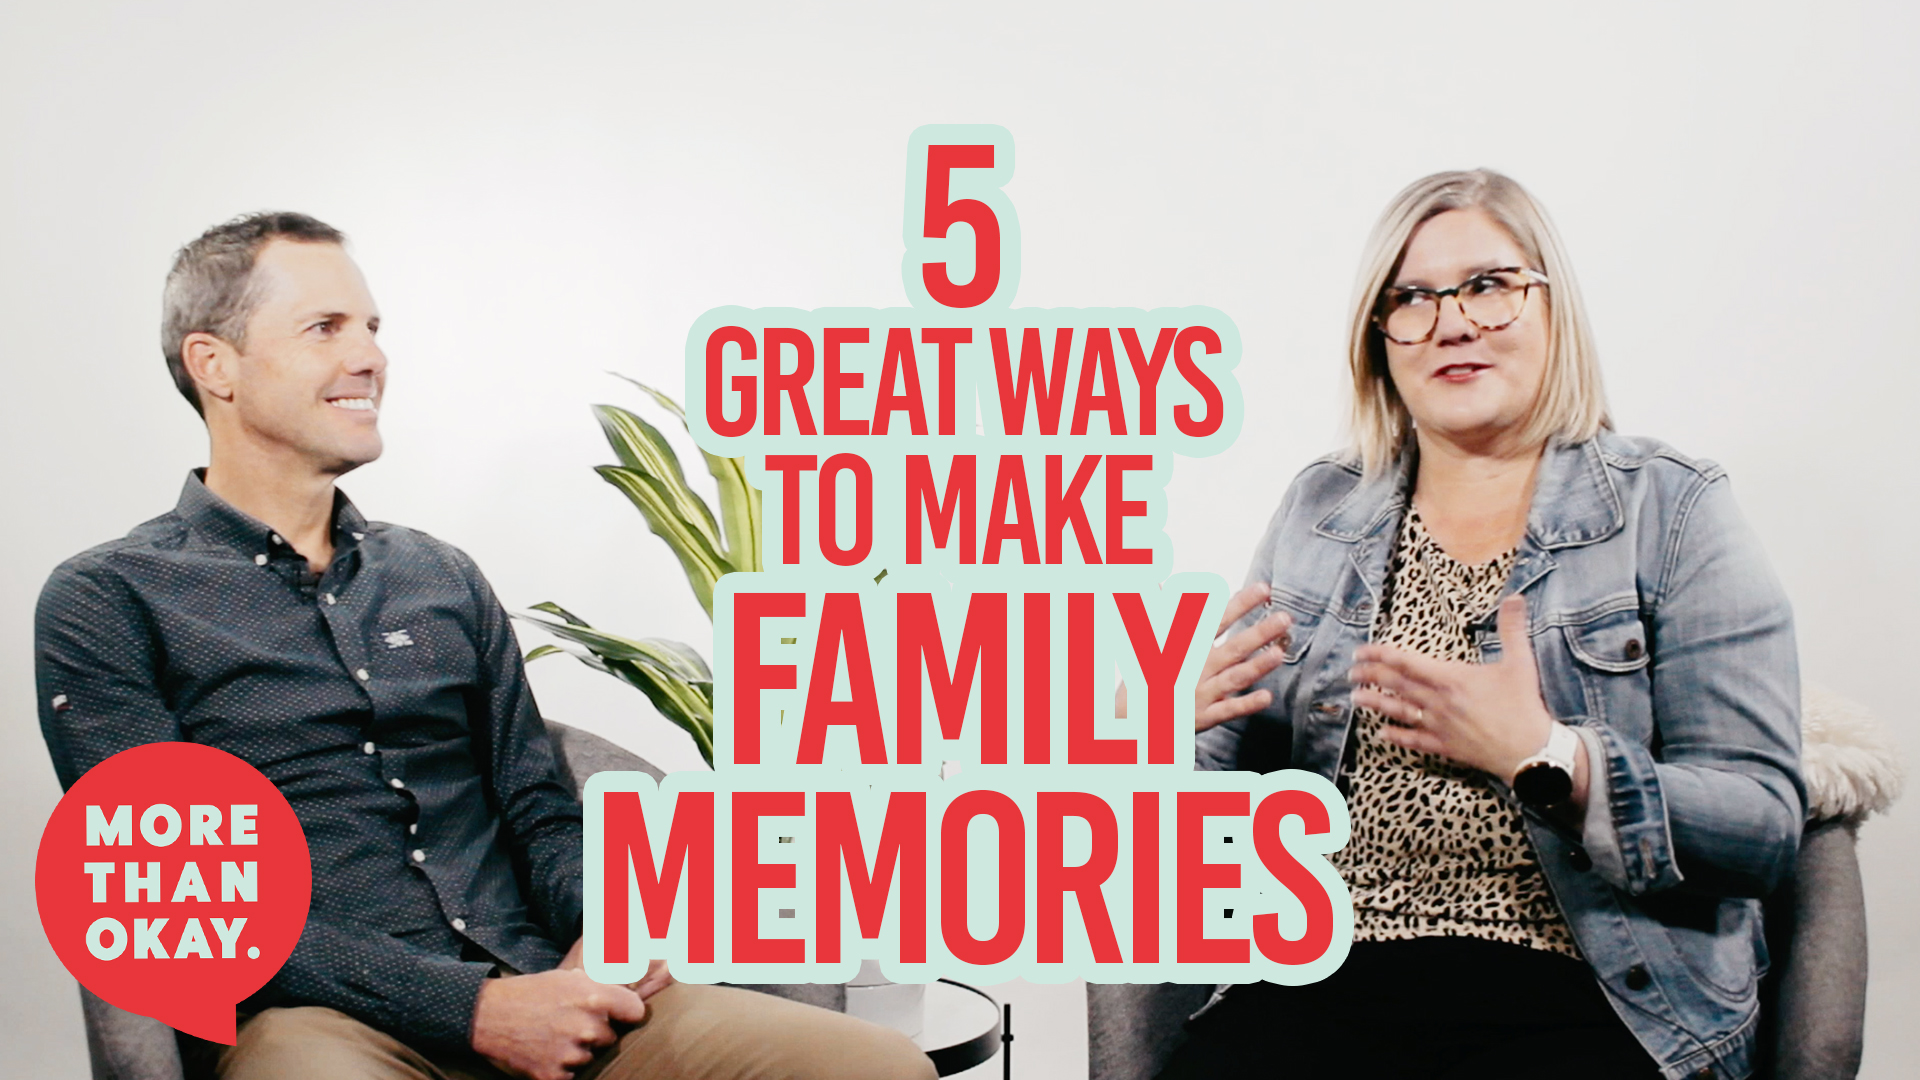 5 great ways to build family memories